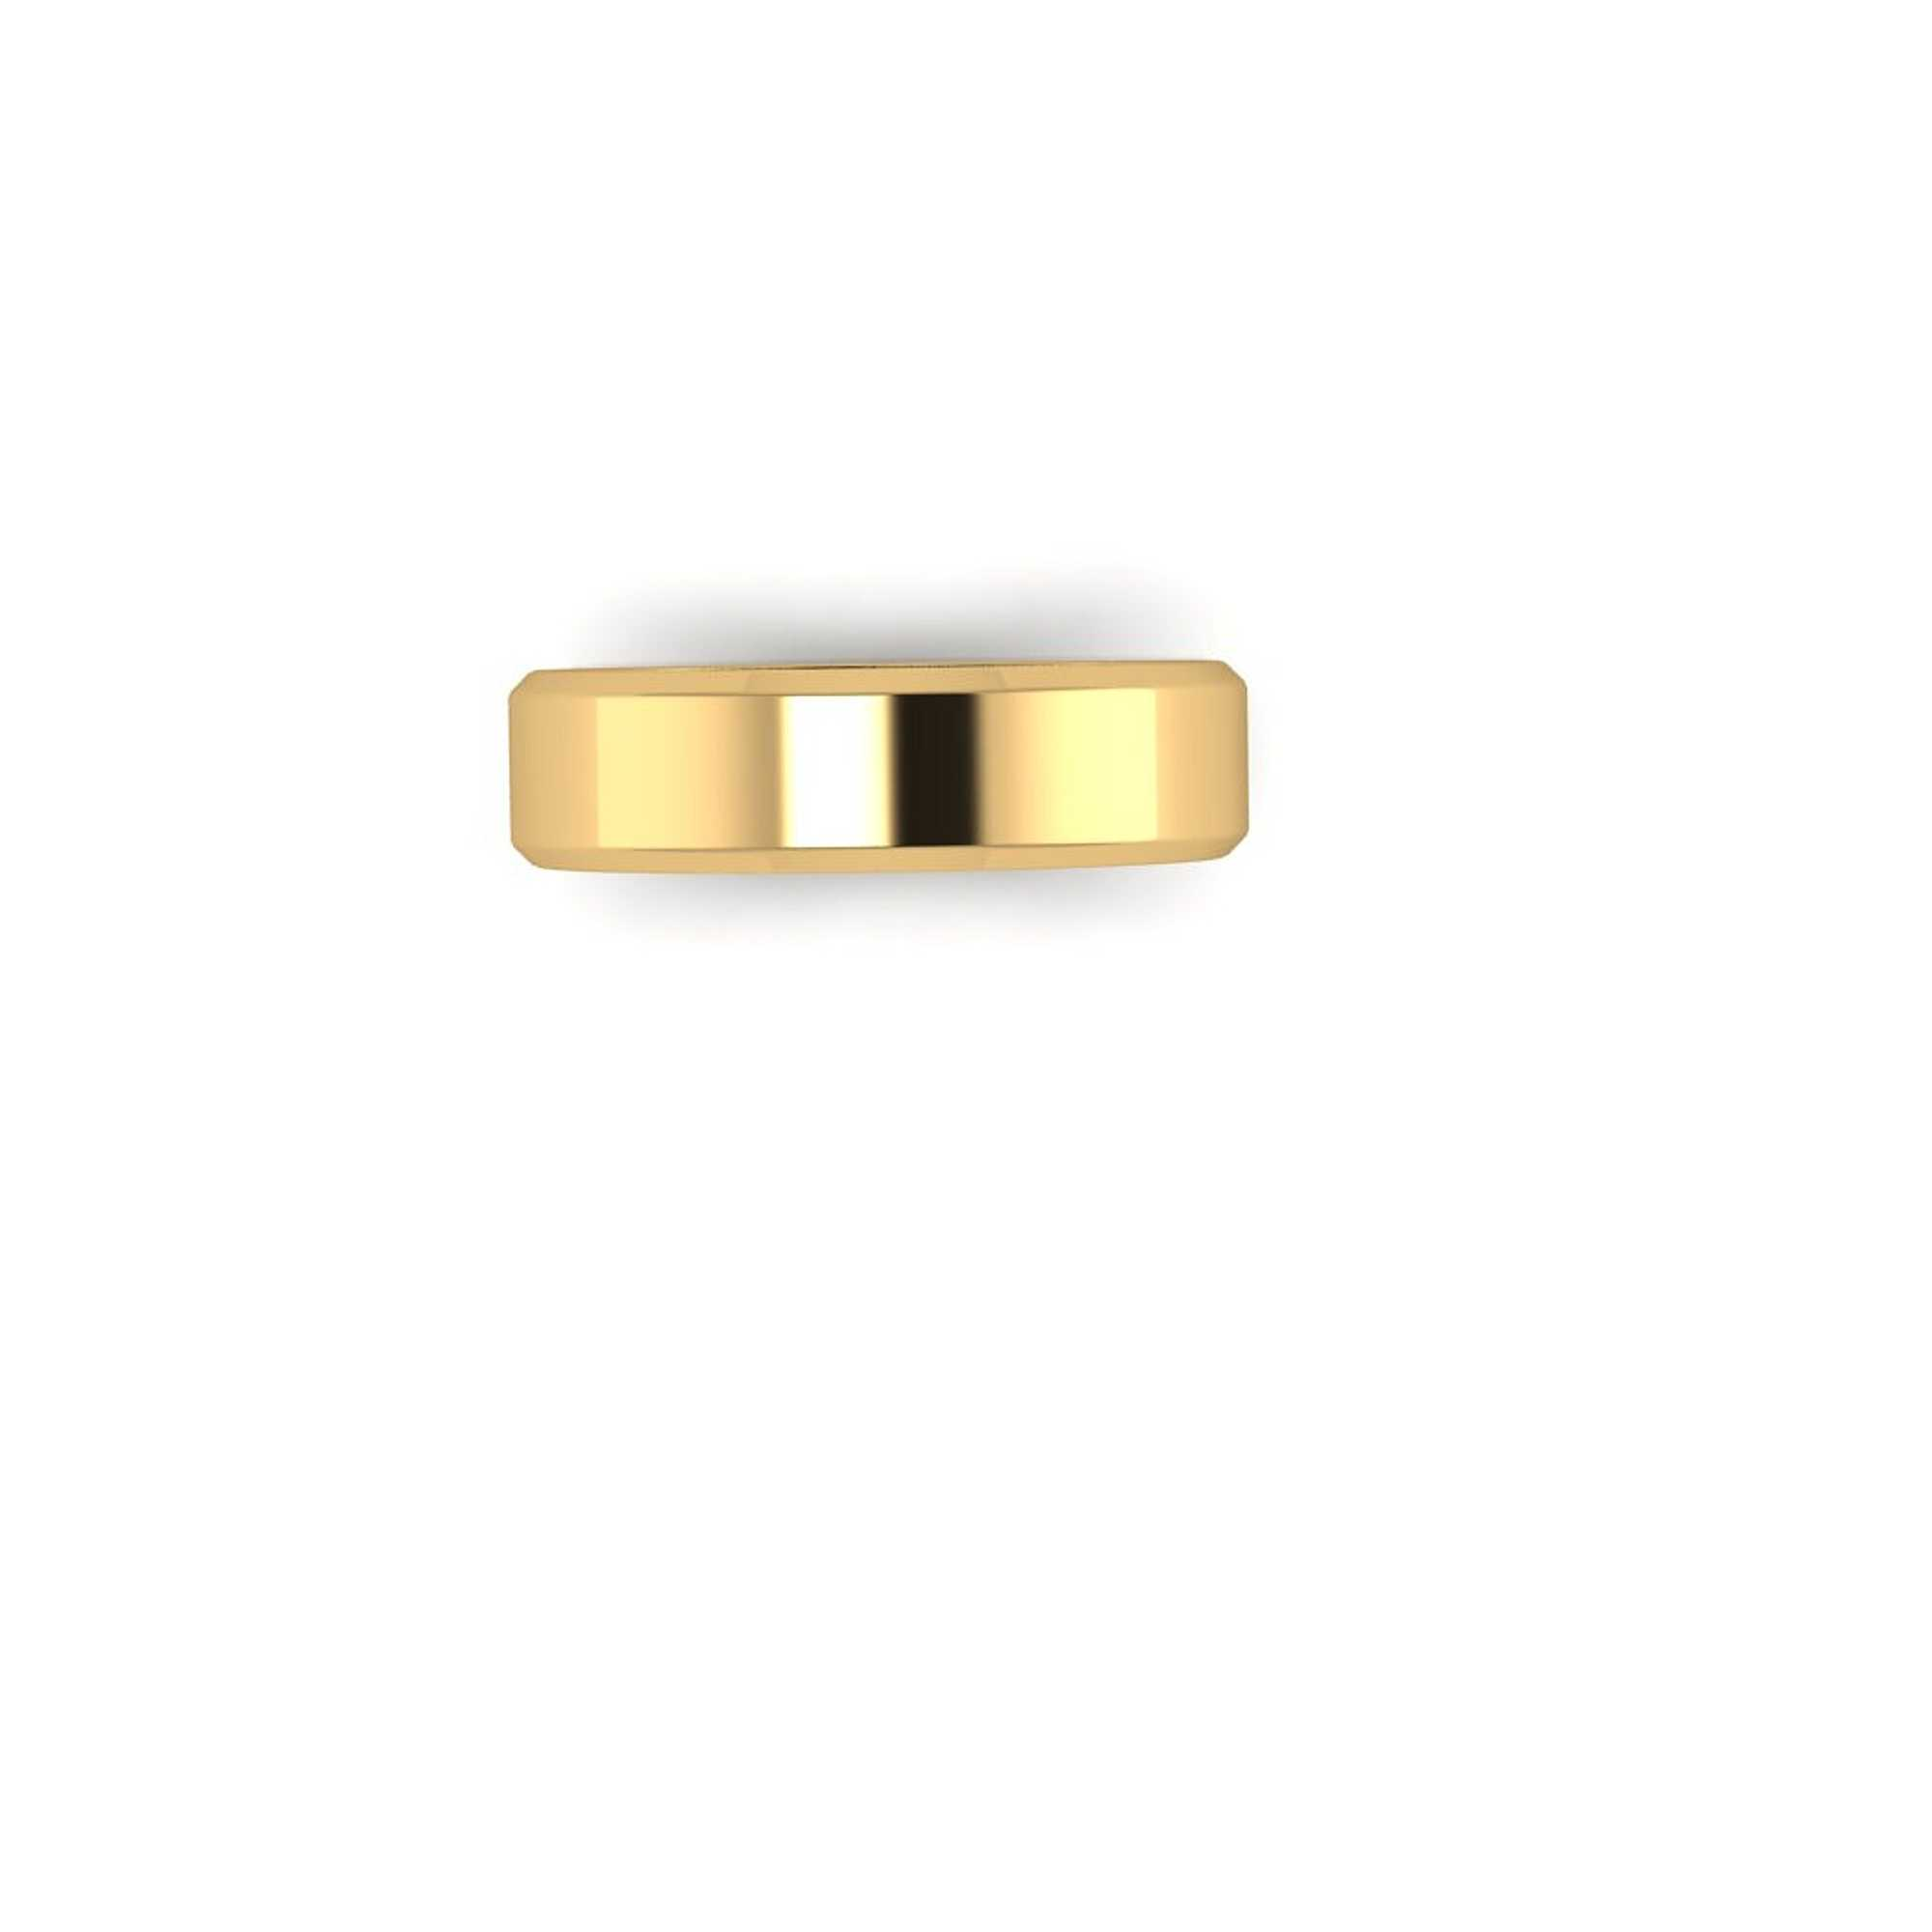 Tabla Chaflán Wedding Rings